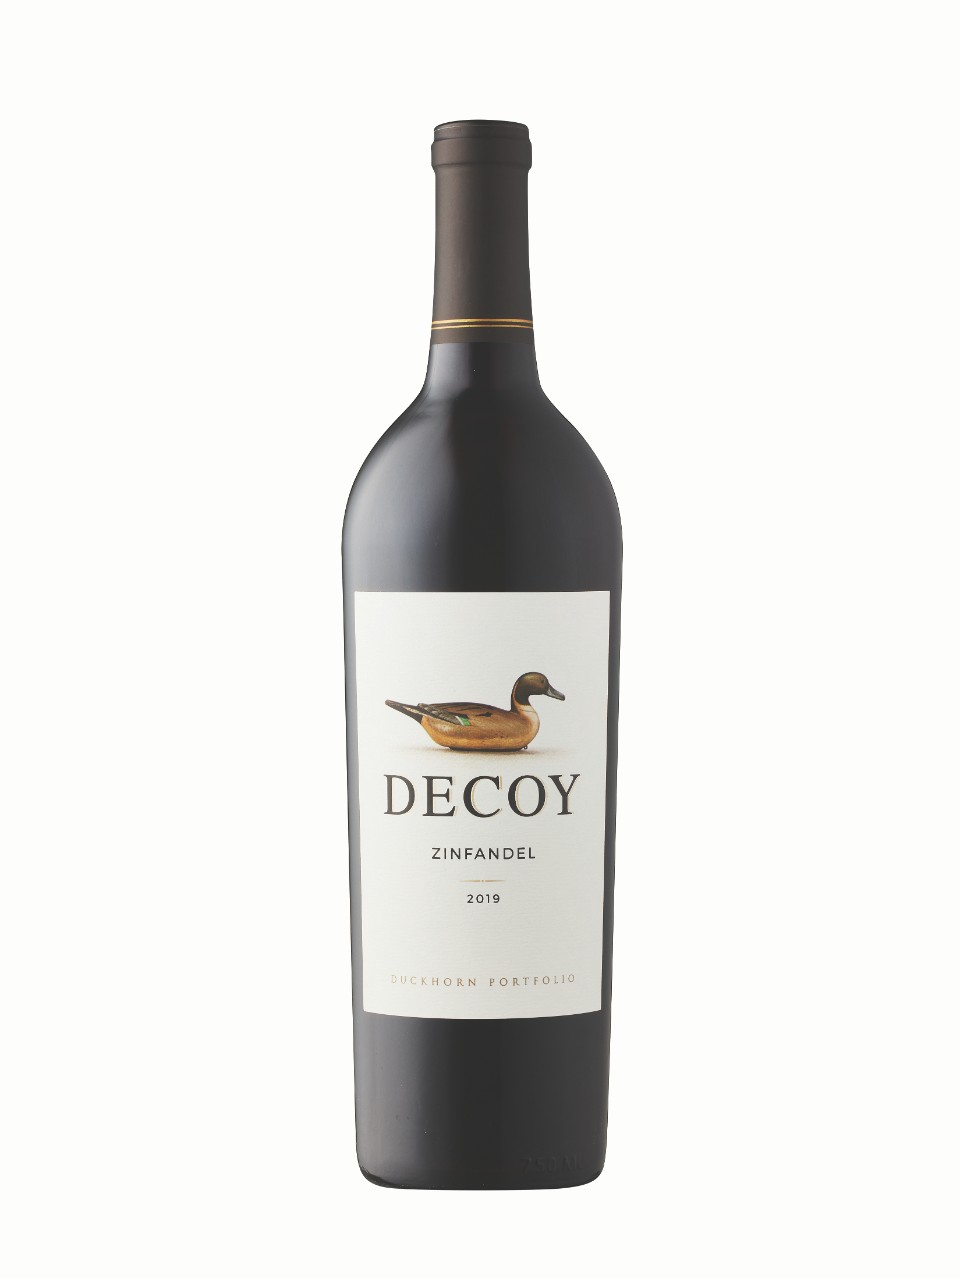 Decoy Zinfandel 2016